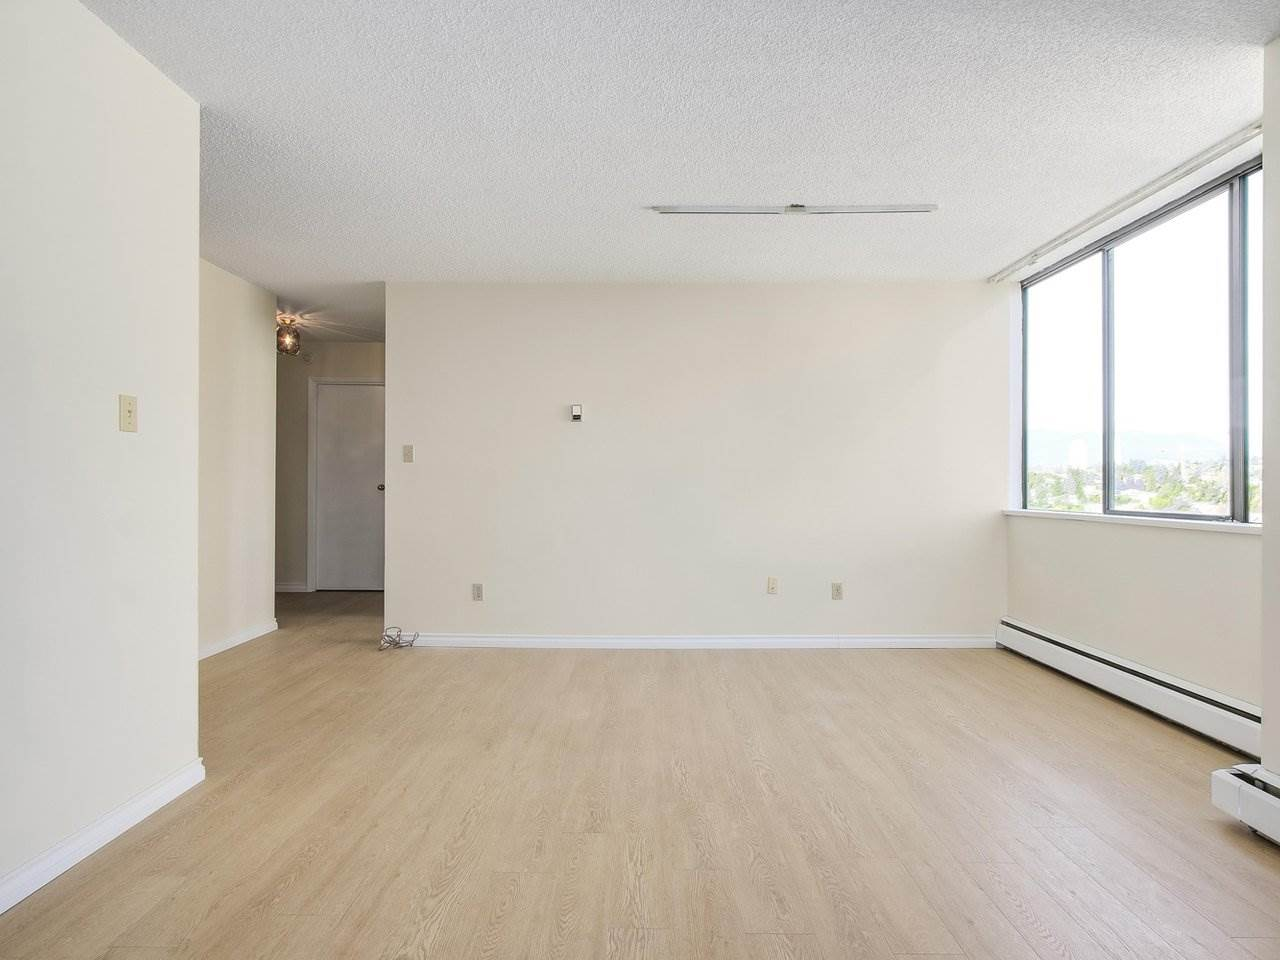 Condo Apartment at 1903 3737 BARTLETT COURT, Unit 1903, Burnaby North, British Columbia. Image 11